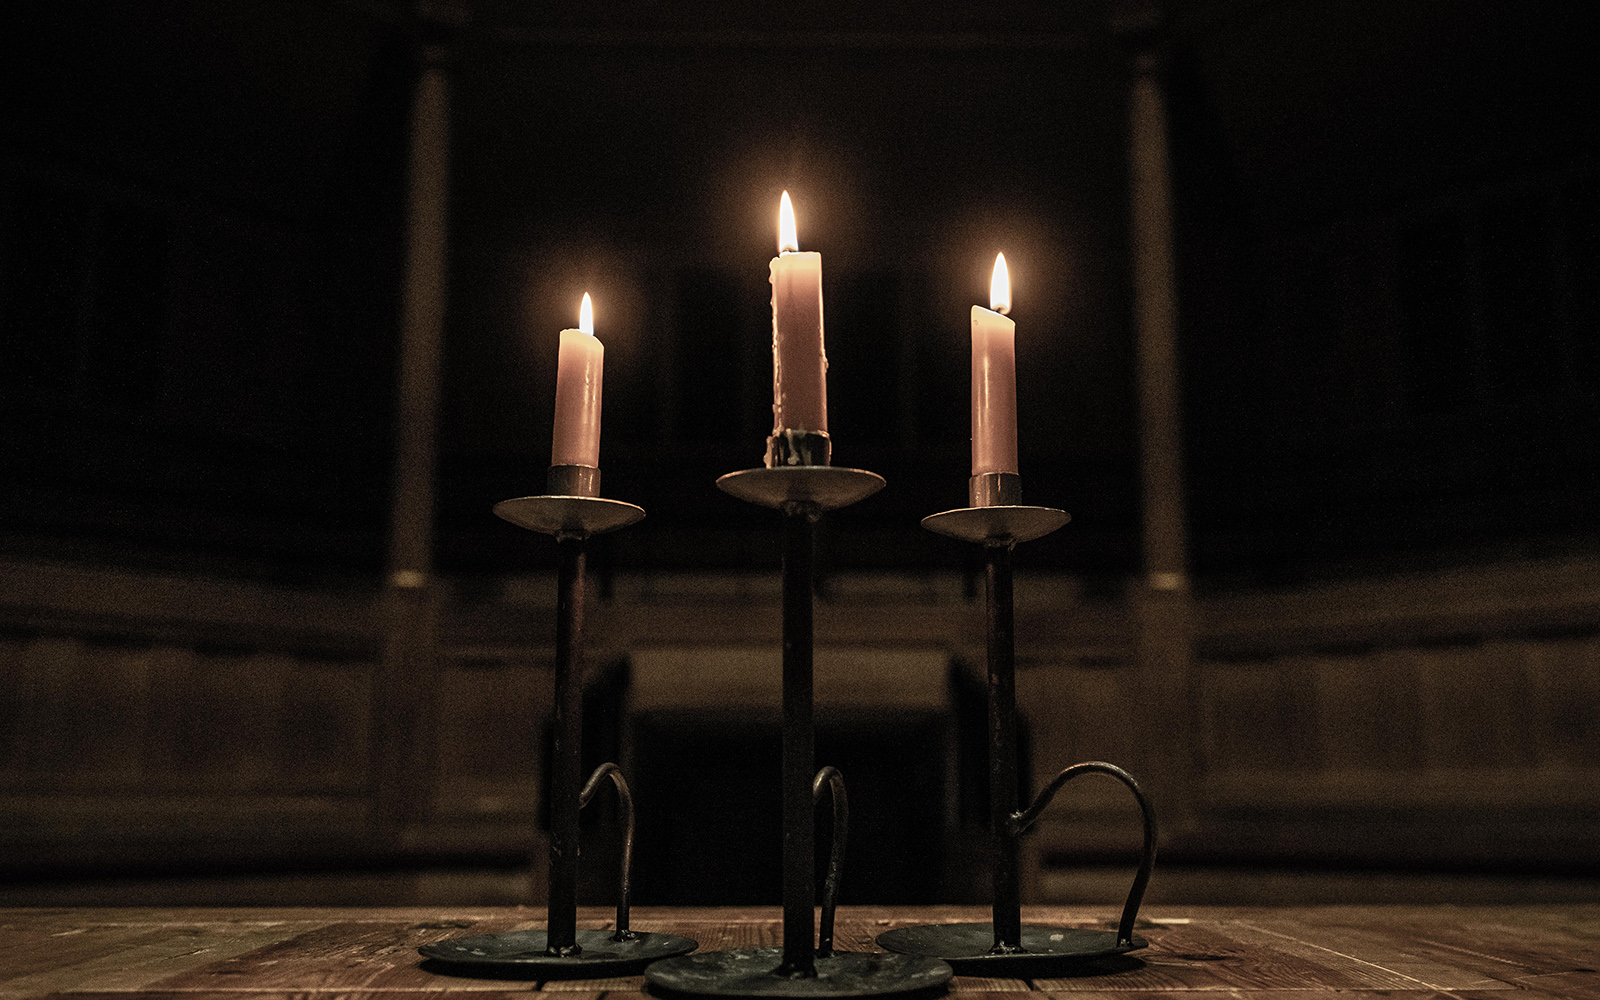 Three lit candles in the dark shadows of an indoor wooden theatre.